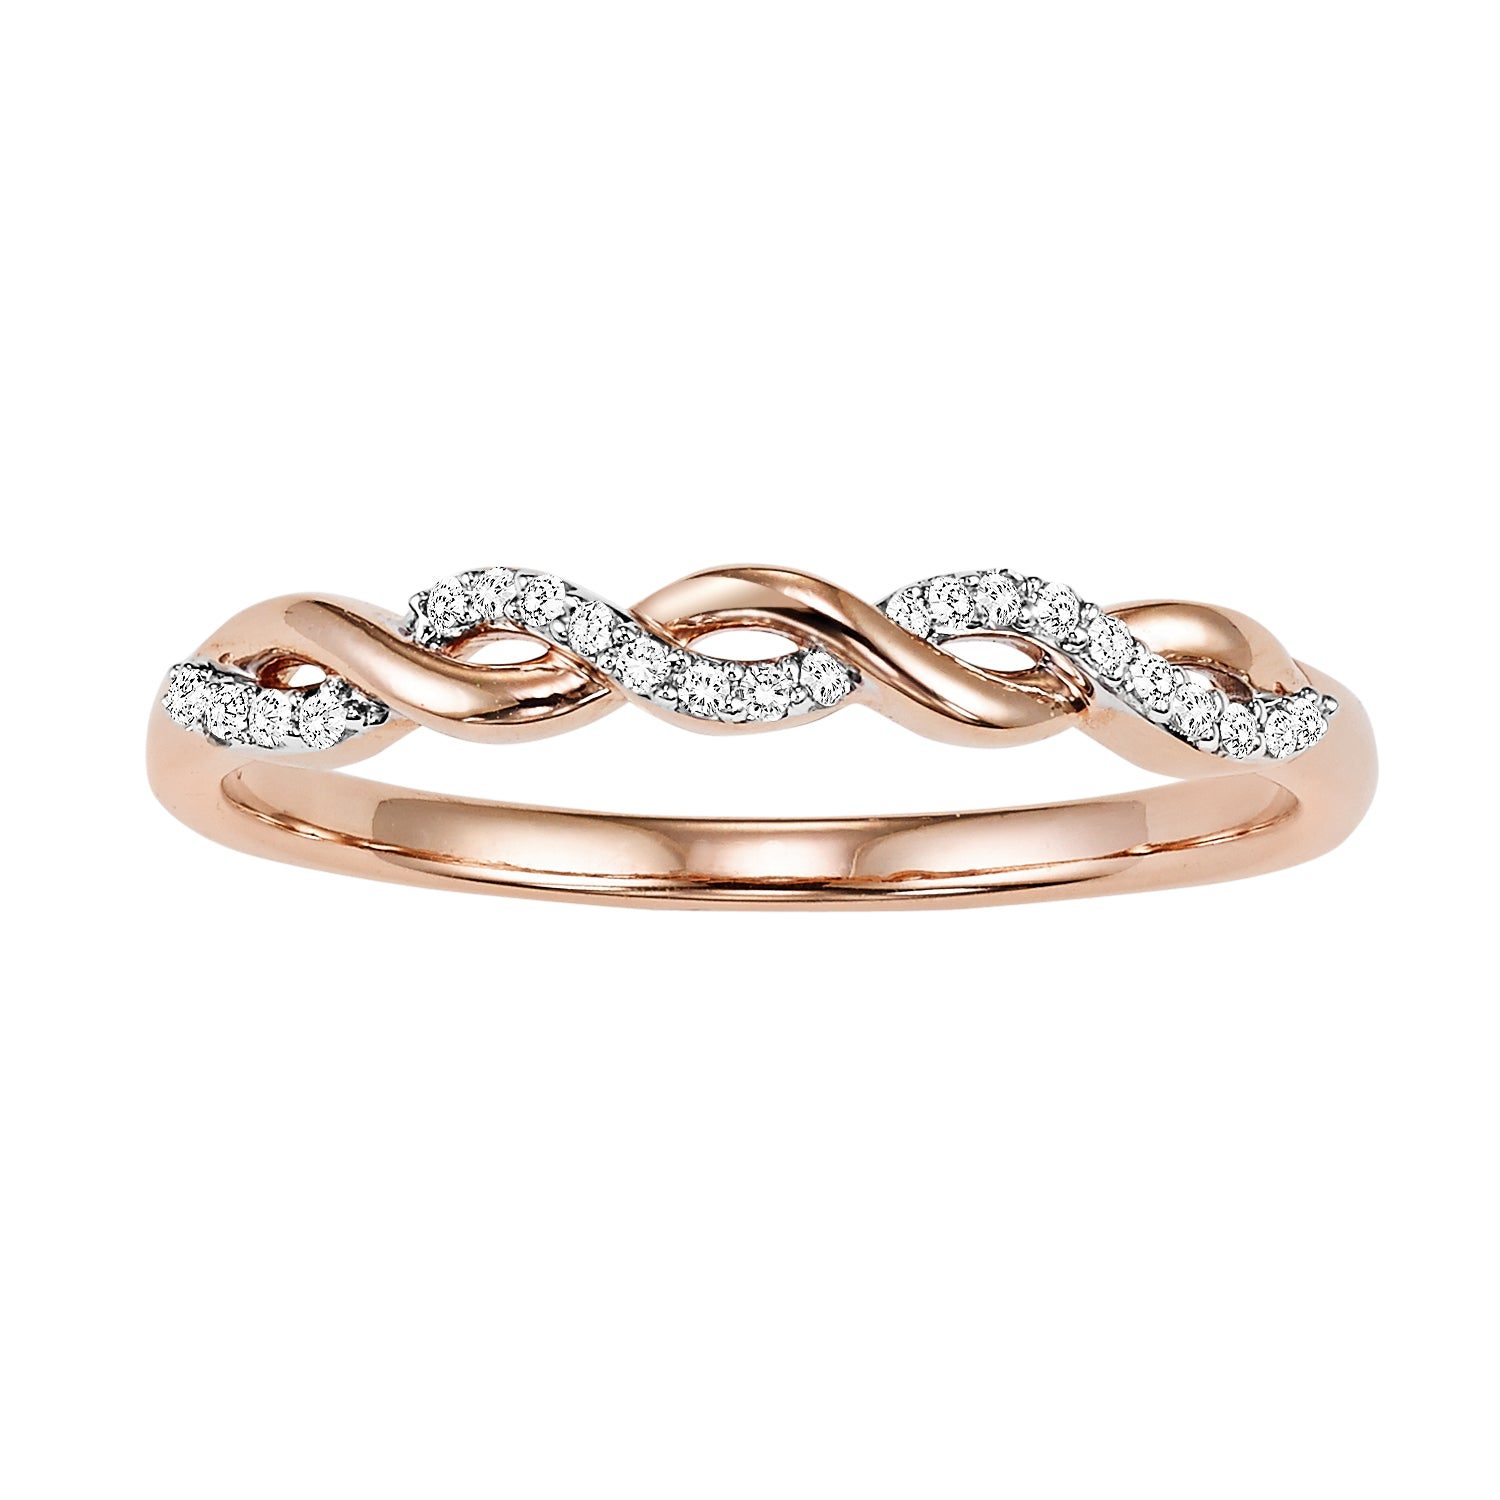 14K Rose Gold Interlocking Diamond Ring - 1/20 ct.